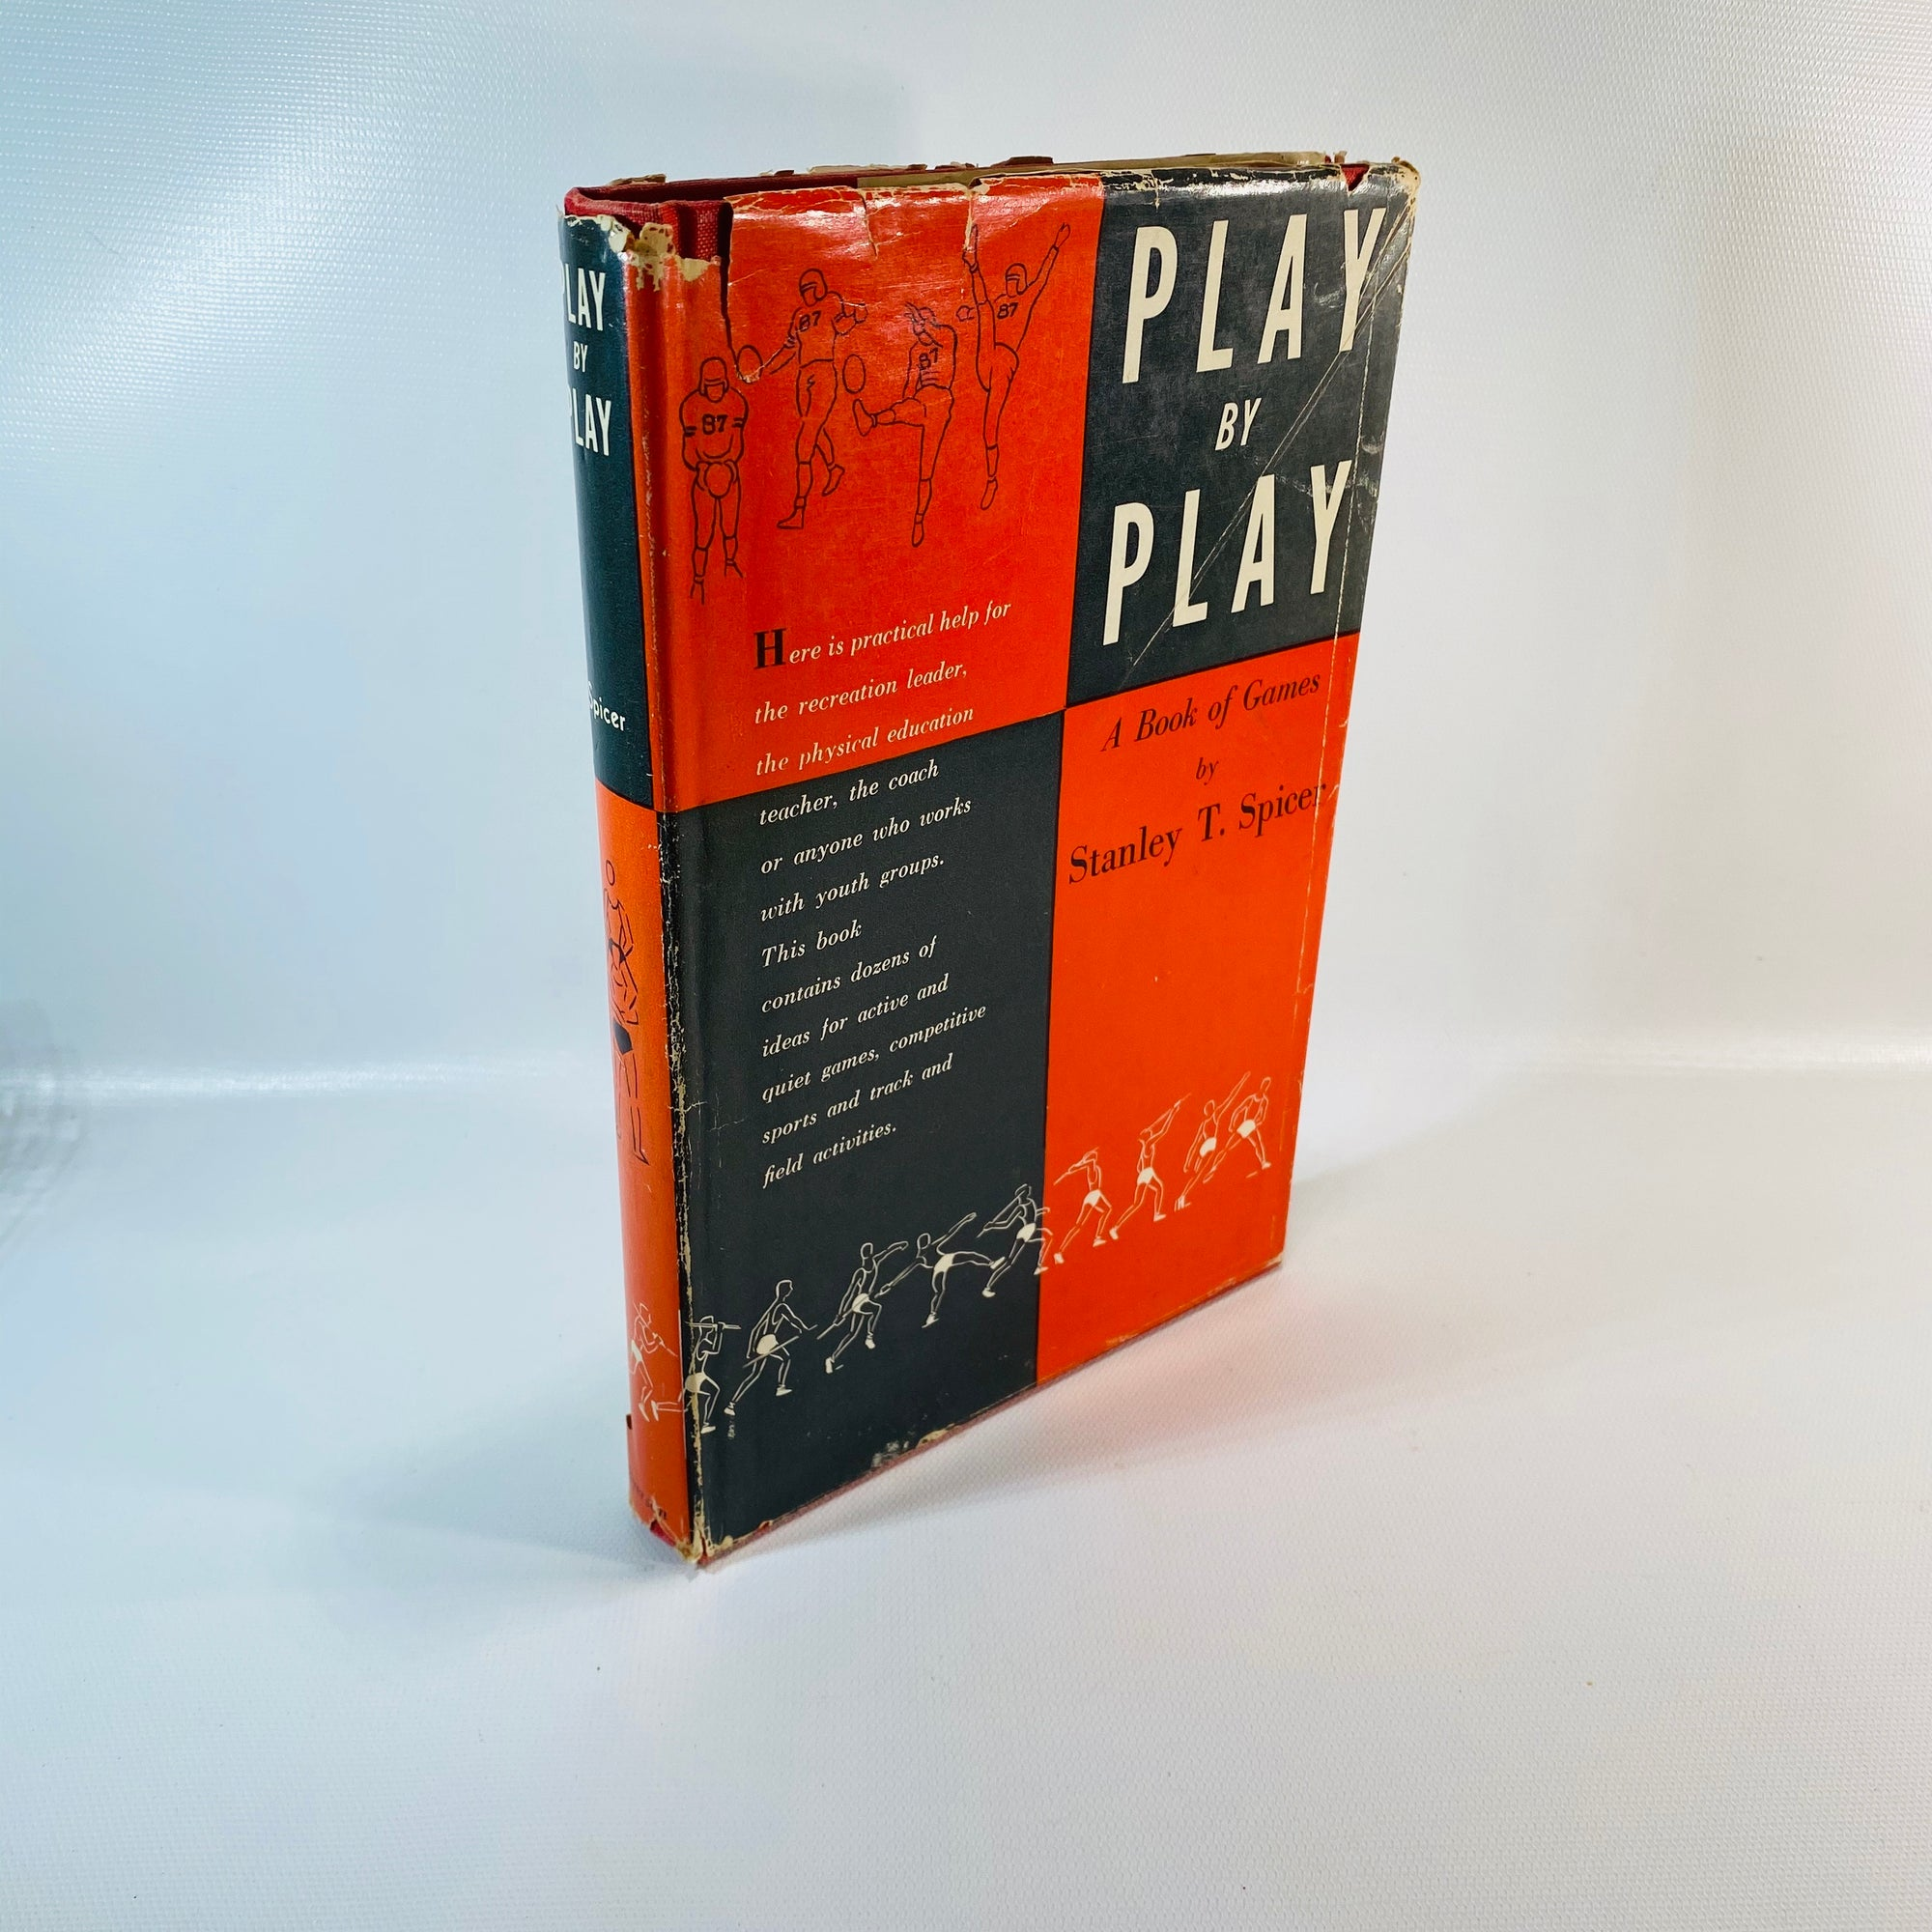 Play by Play Games Stanley Spicer 1955 First Edition-Reading Vintage